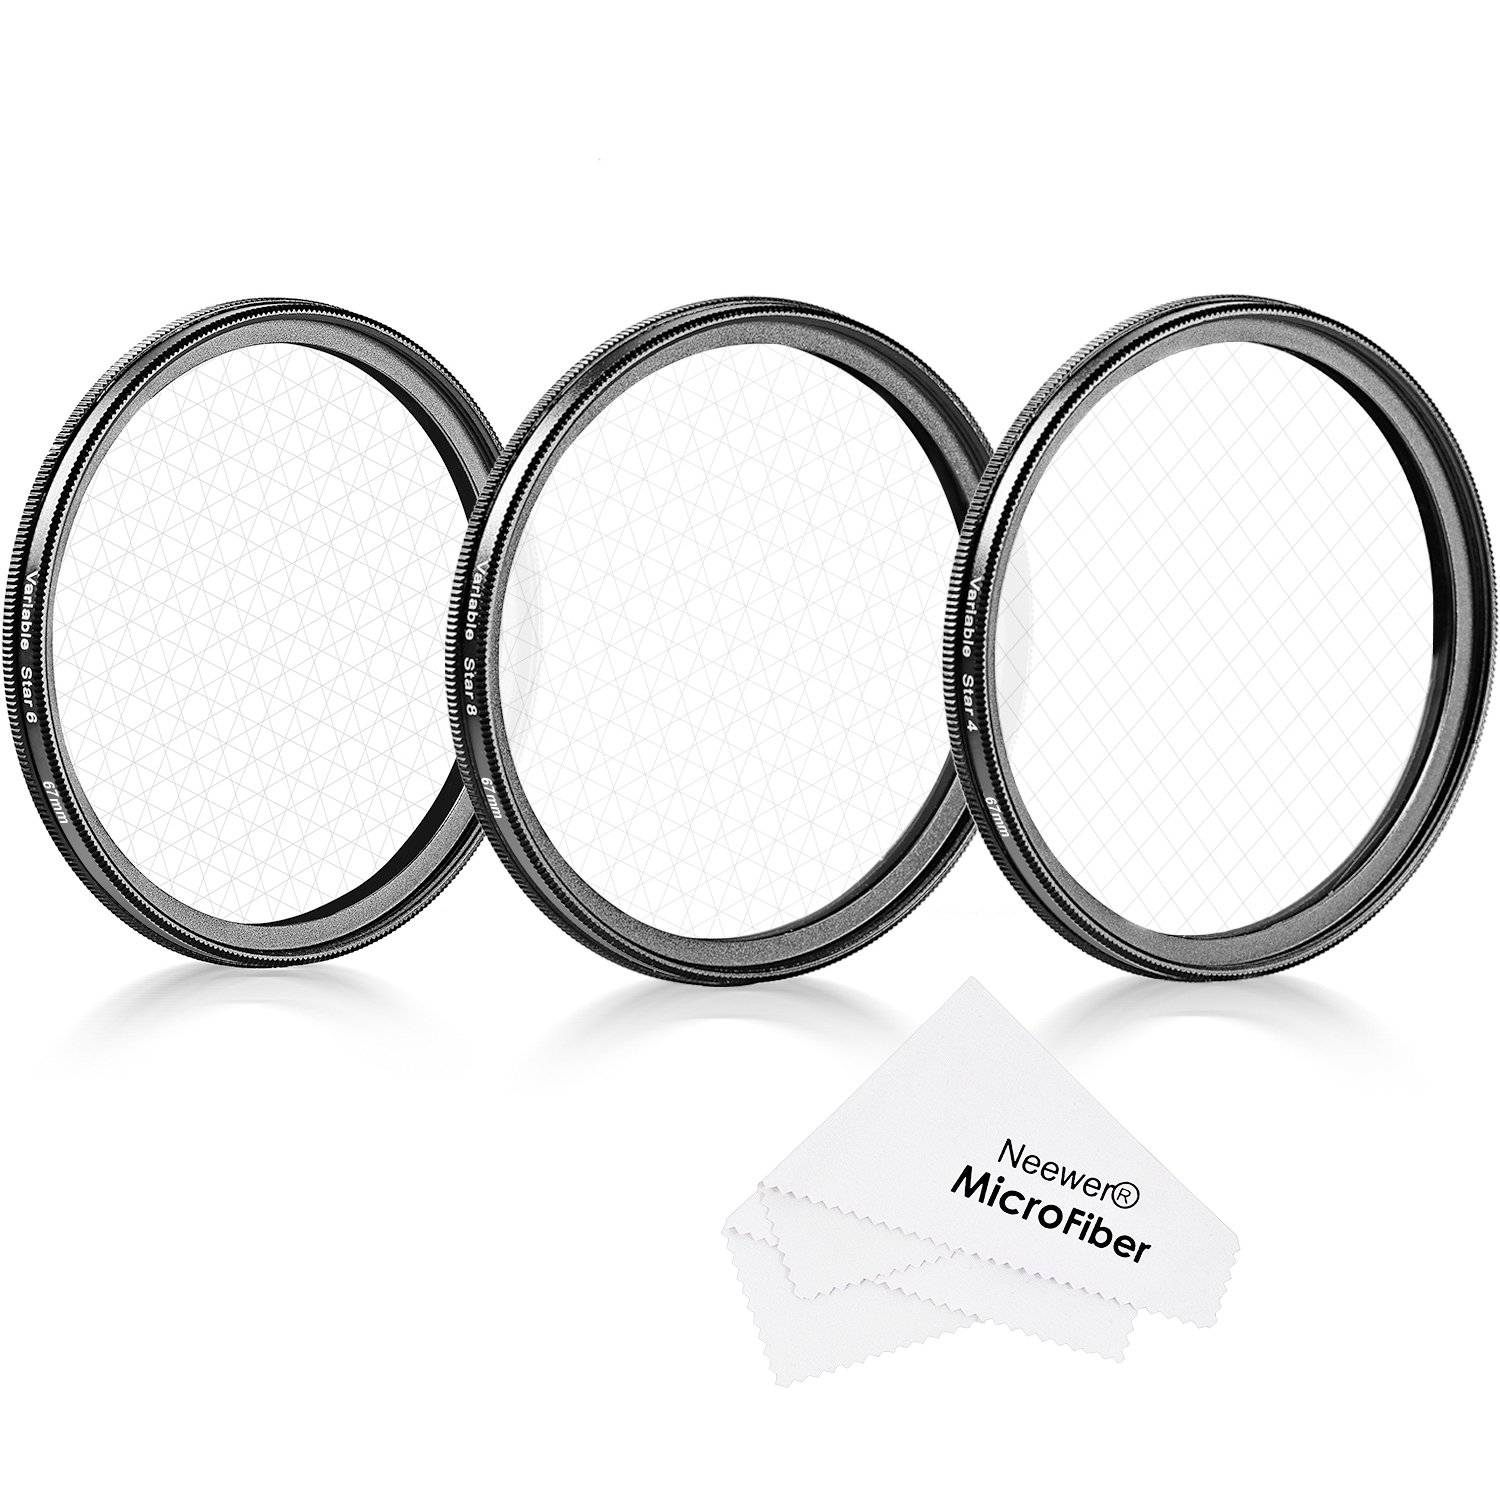 Neewer 67mm Rotated Star Filter Set for Canon Nikon Sony Olympus and Other DSLR Cameras, Includes: 67mm Rotated 4-Point, 6-Point and 8-Point Star Cross Filters by Neewer